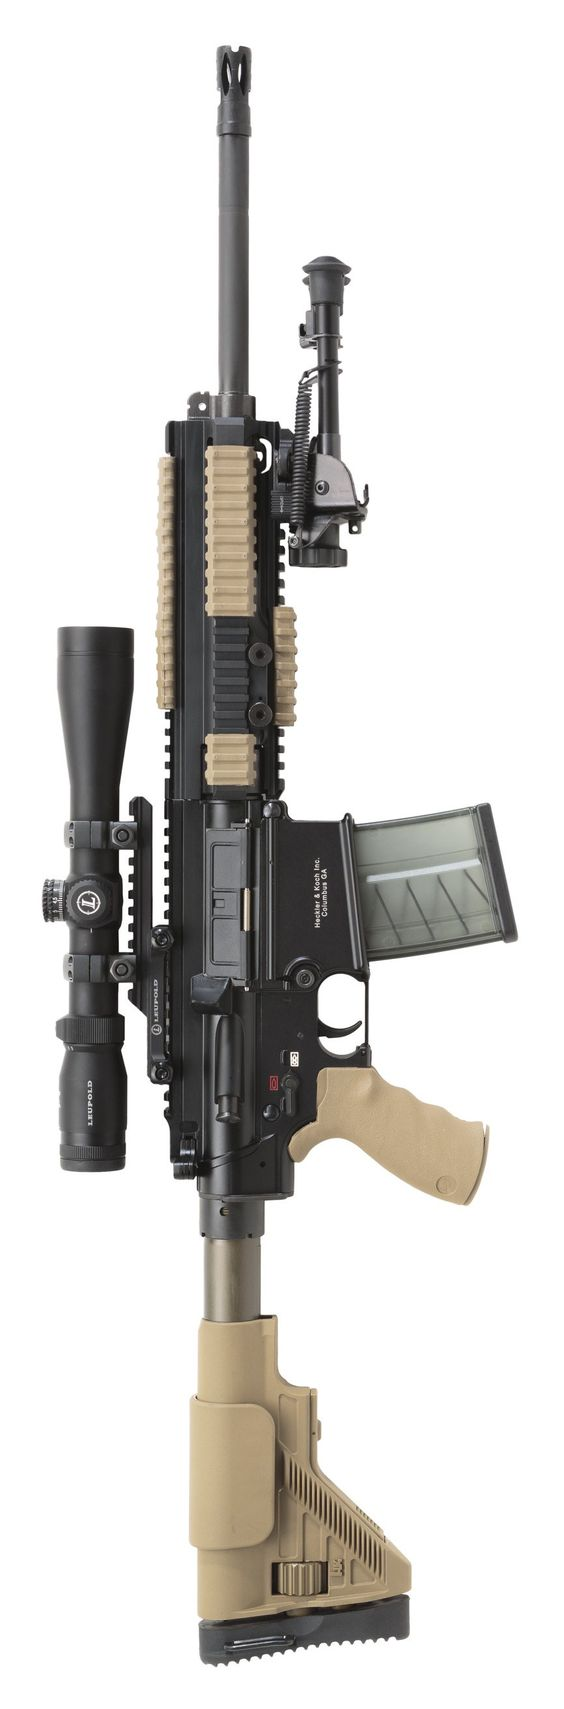 Heckler Koch HK MR762 rifle. I would SO love to have a 7.62 x 51mm semi-auto rifle... maybe one day, I'll build an AR-10 :-)